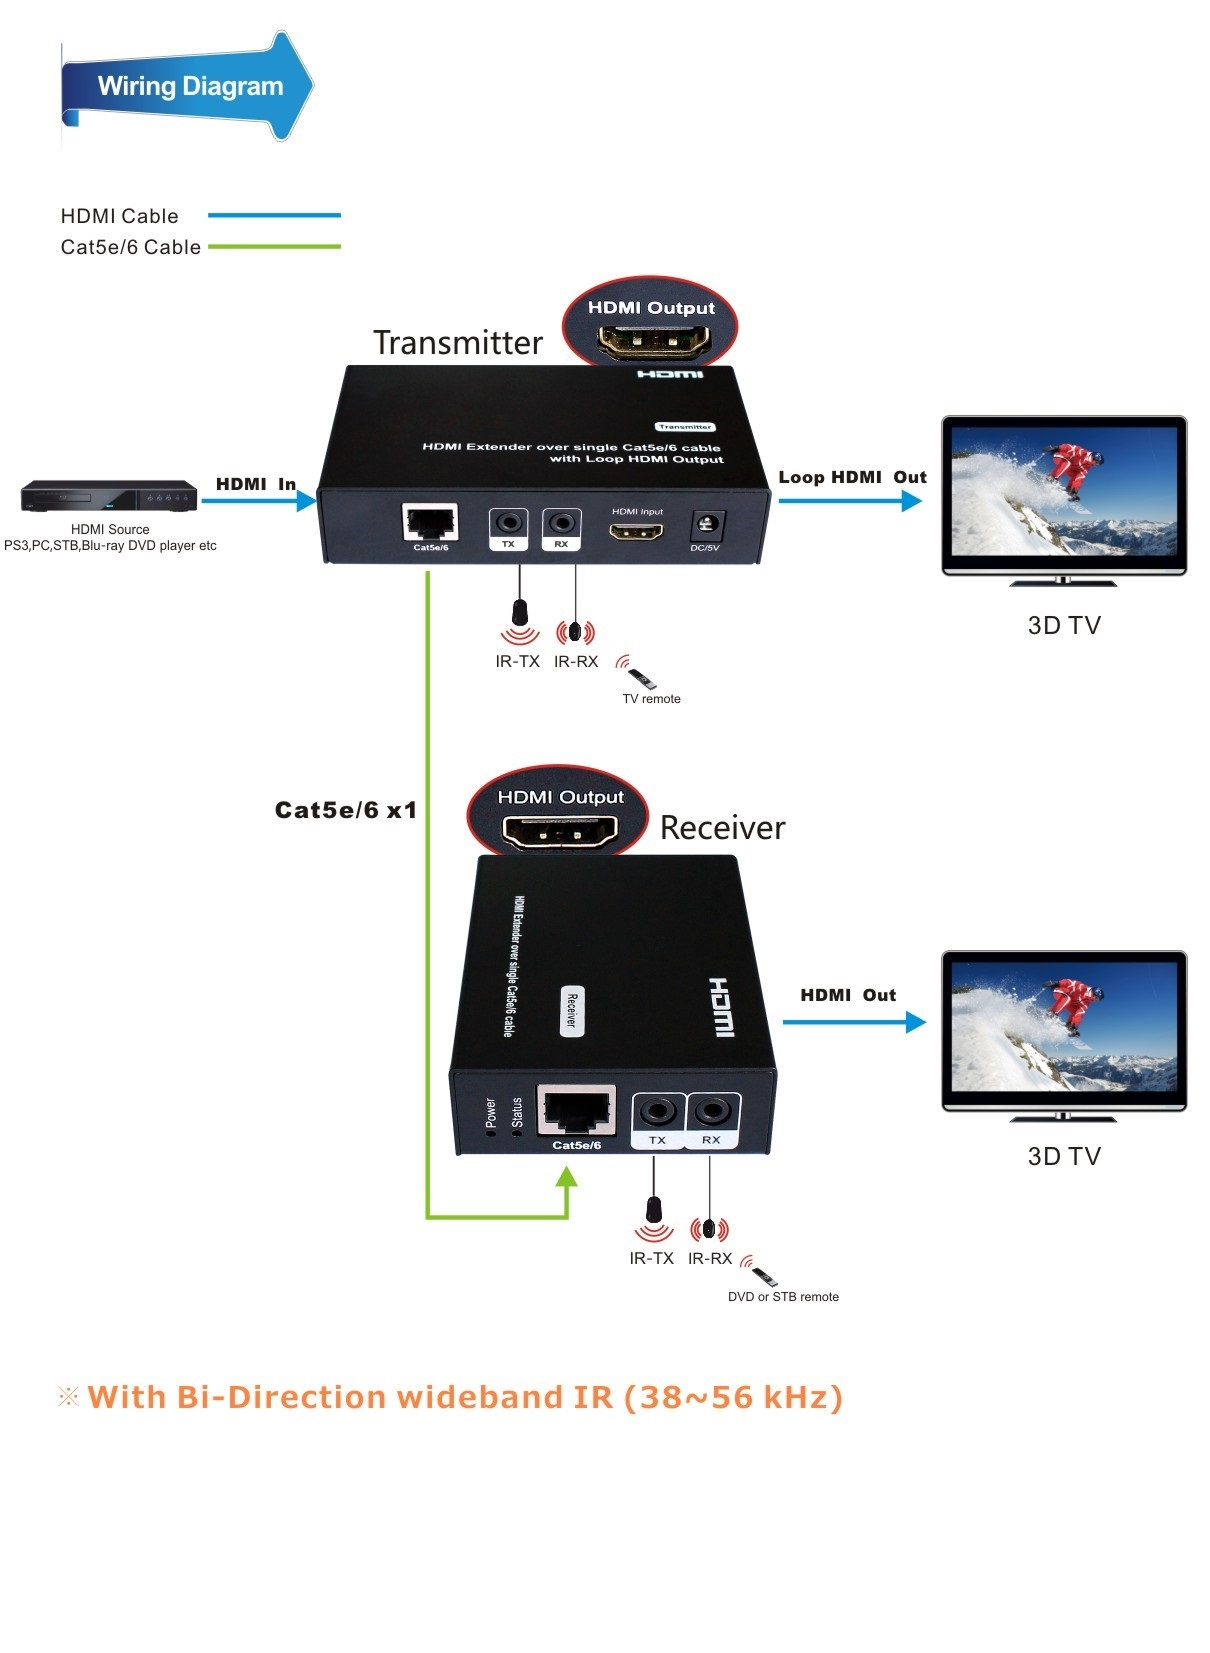 Hdmi Product Categories Pro2 2016 Wiring Diagram Of Cable